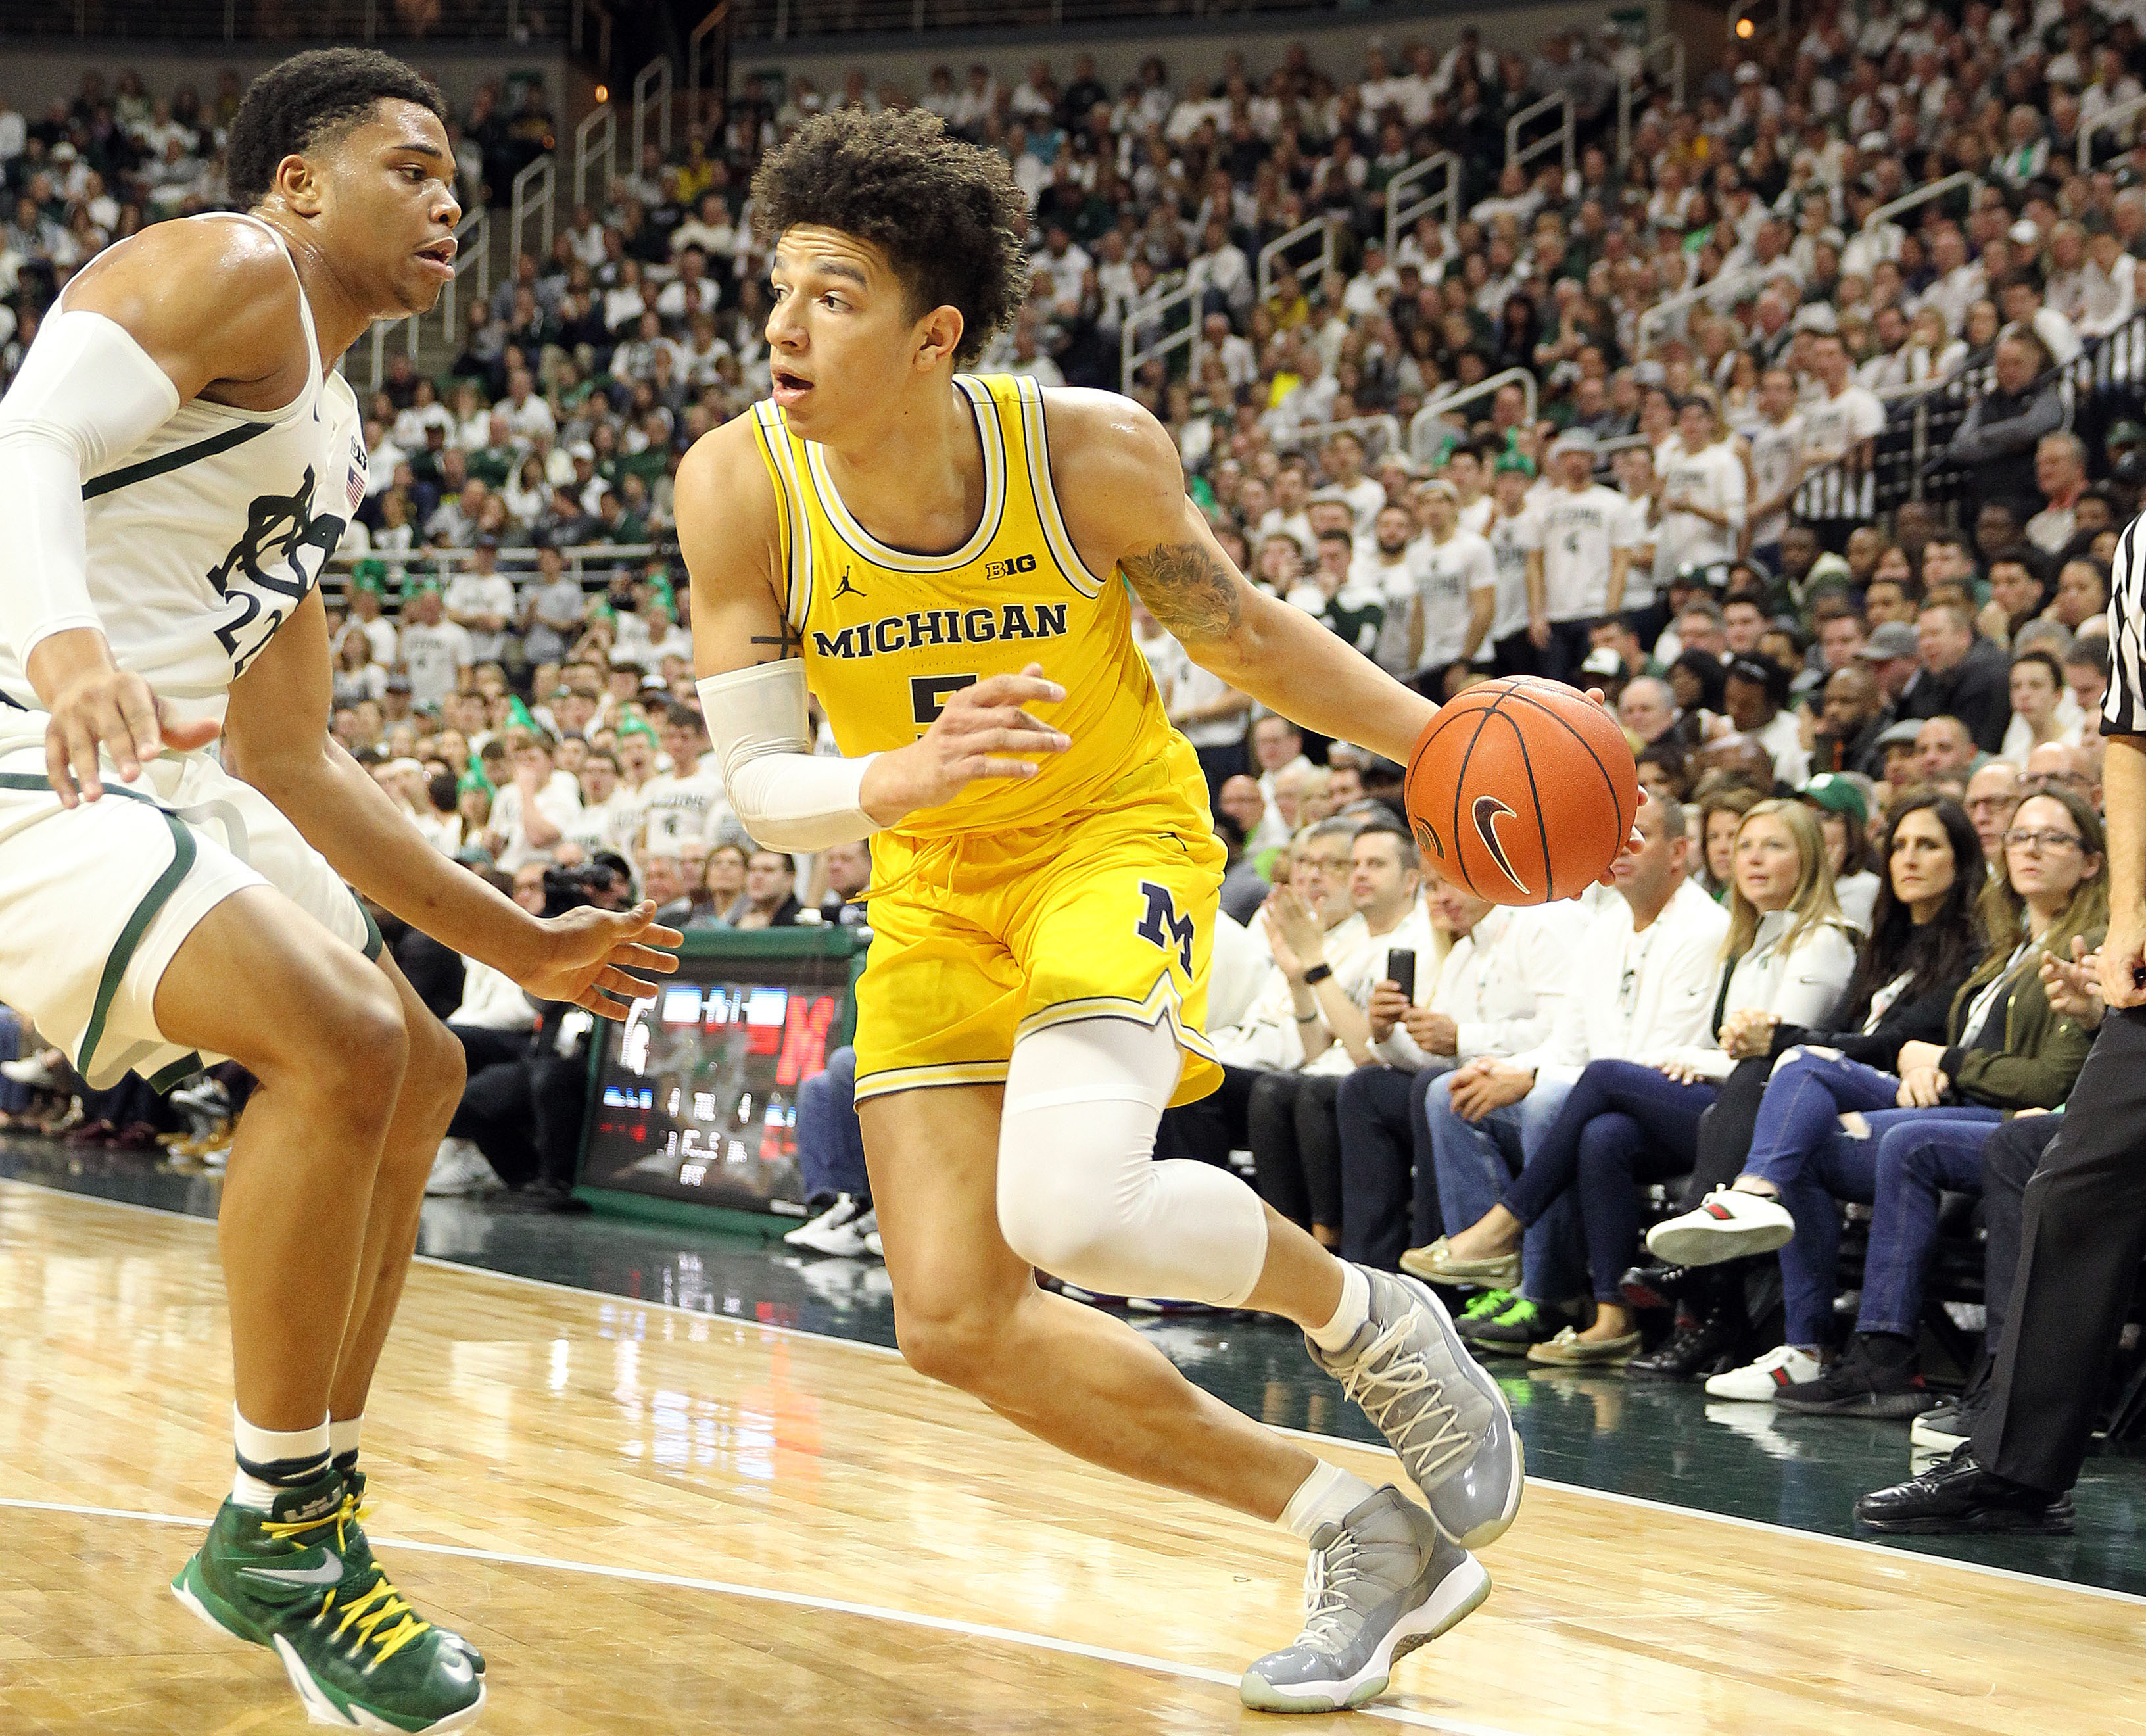 Michigan basketball: Wins over Rutgers, Purdue Could Lock ...